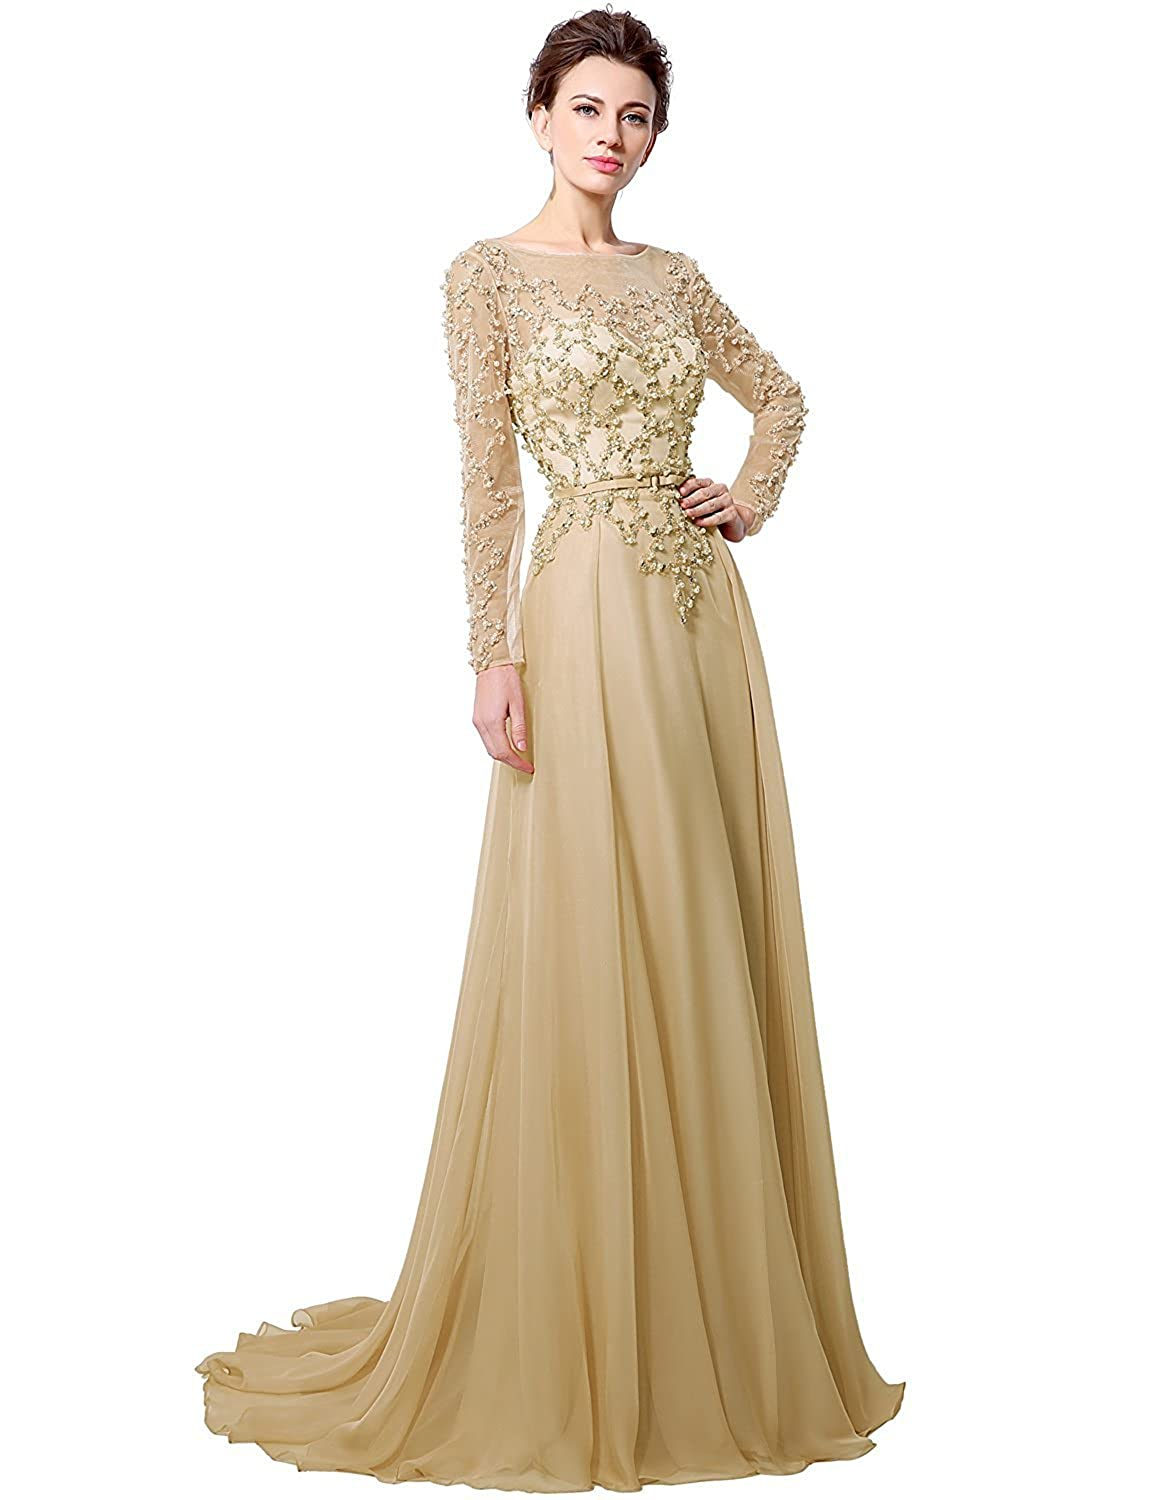 051champagne Sarahbridal Womens Lace Prom Dresses Formal Evening Gown with Half Sleeve SD328